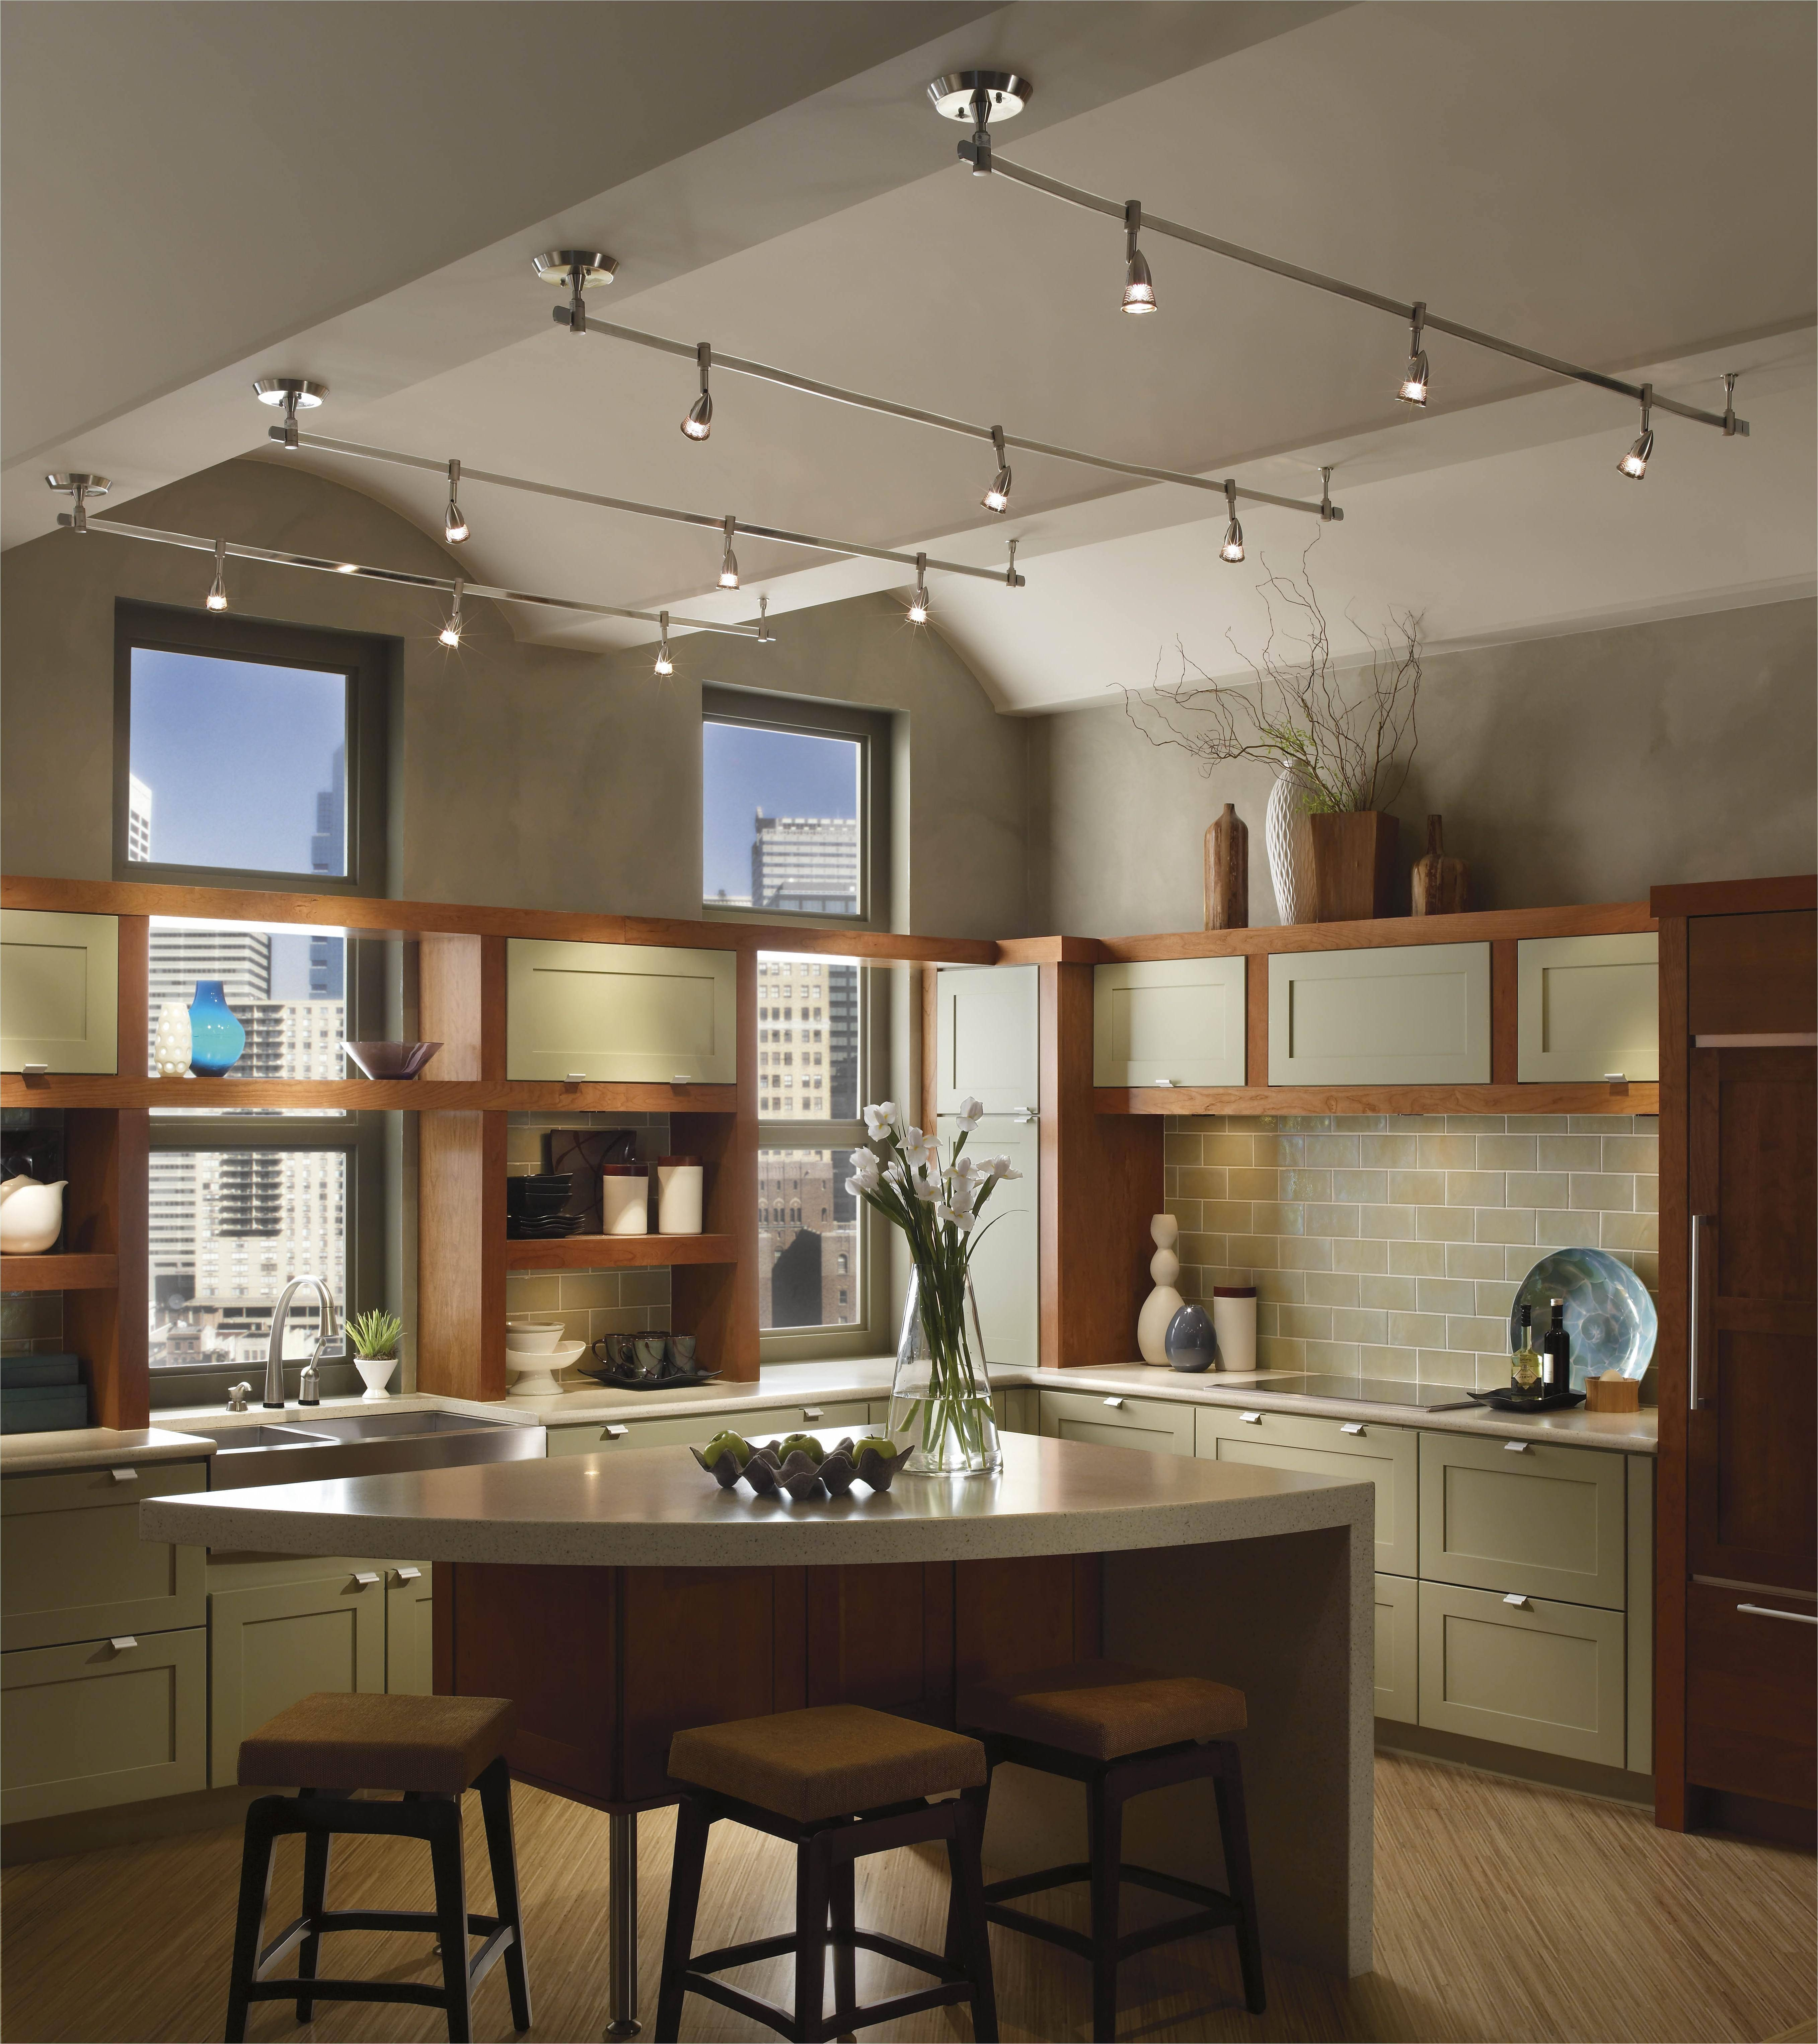 Pendant Lights : Good Looking Kitchen Track Lighting Bronze For Kitchen Track Pendant Lighting (View 5 of 15)